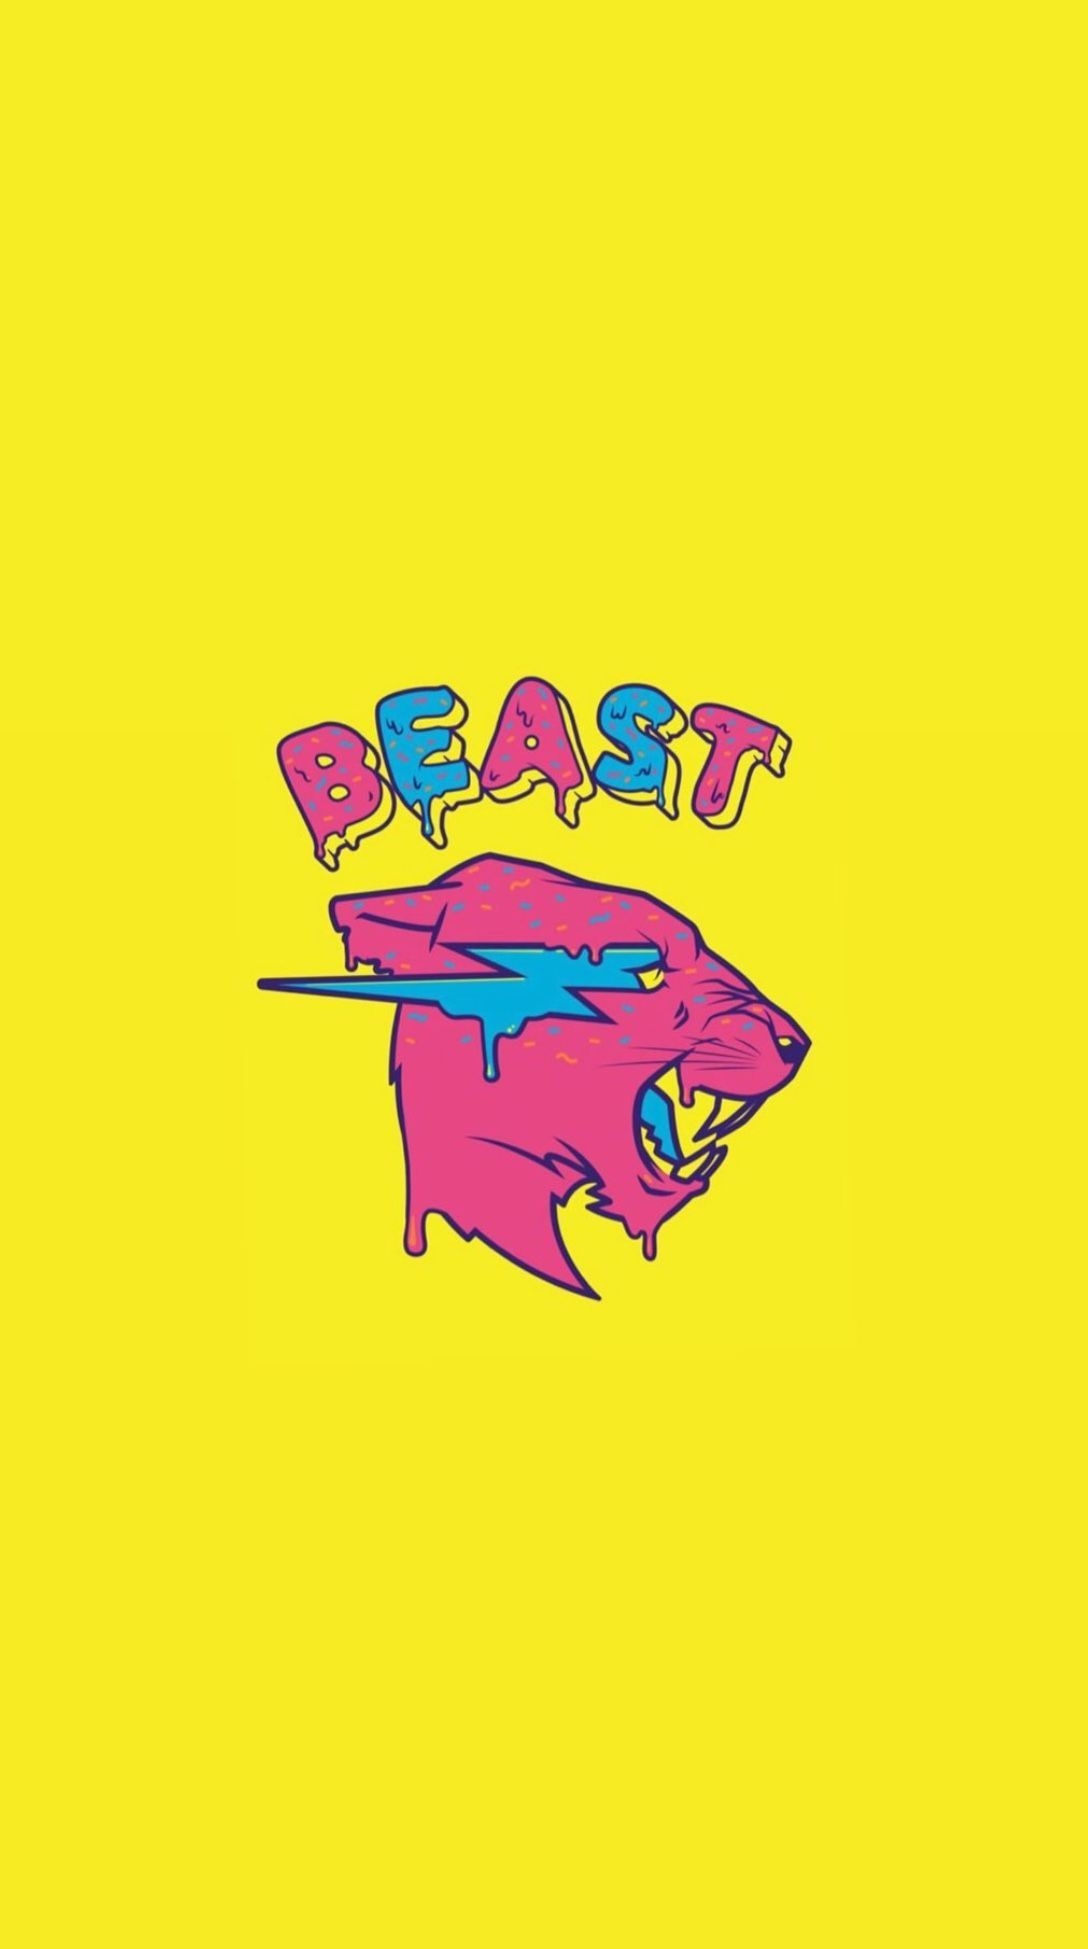 Mr Beast Wallpapers Top Free Mr Beast Backgrounds